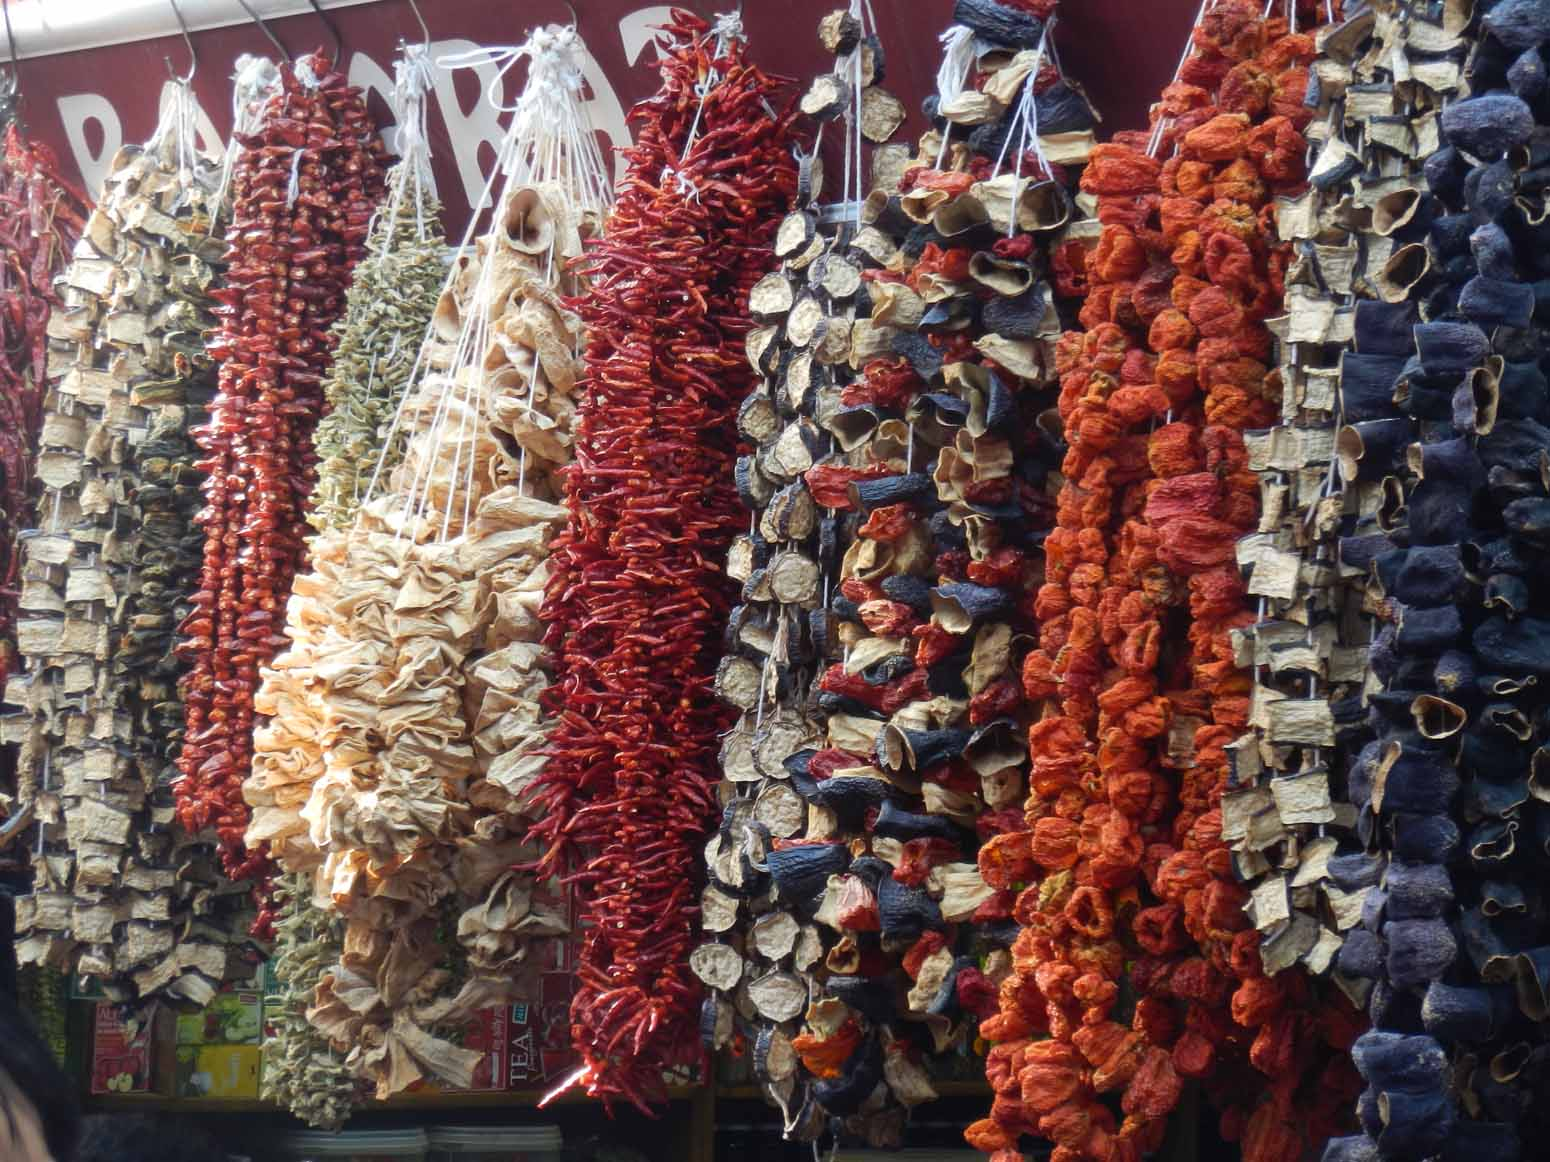 Dried fruits at the market